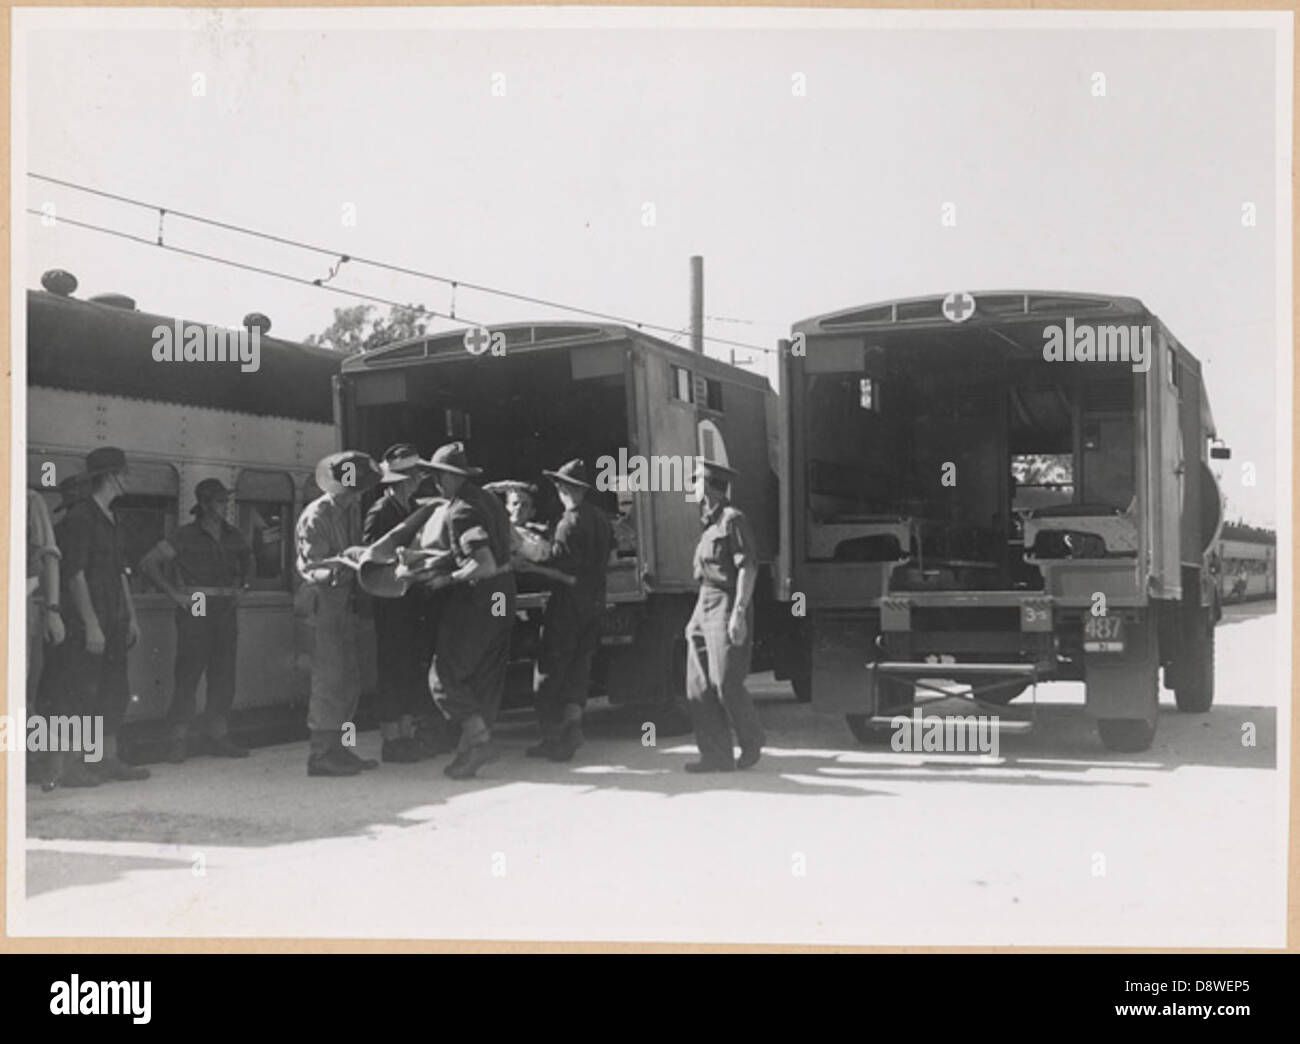 Transferring wounded from train to ambulance, Rosehill, NSW - Stock Image